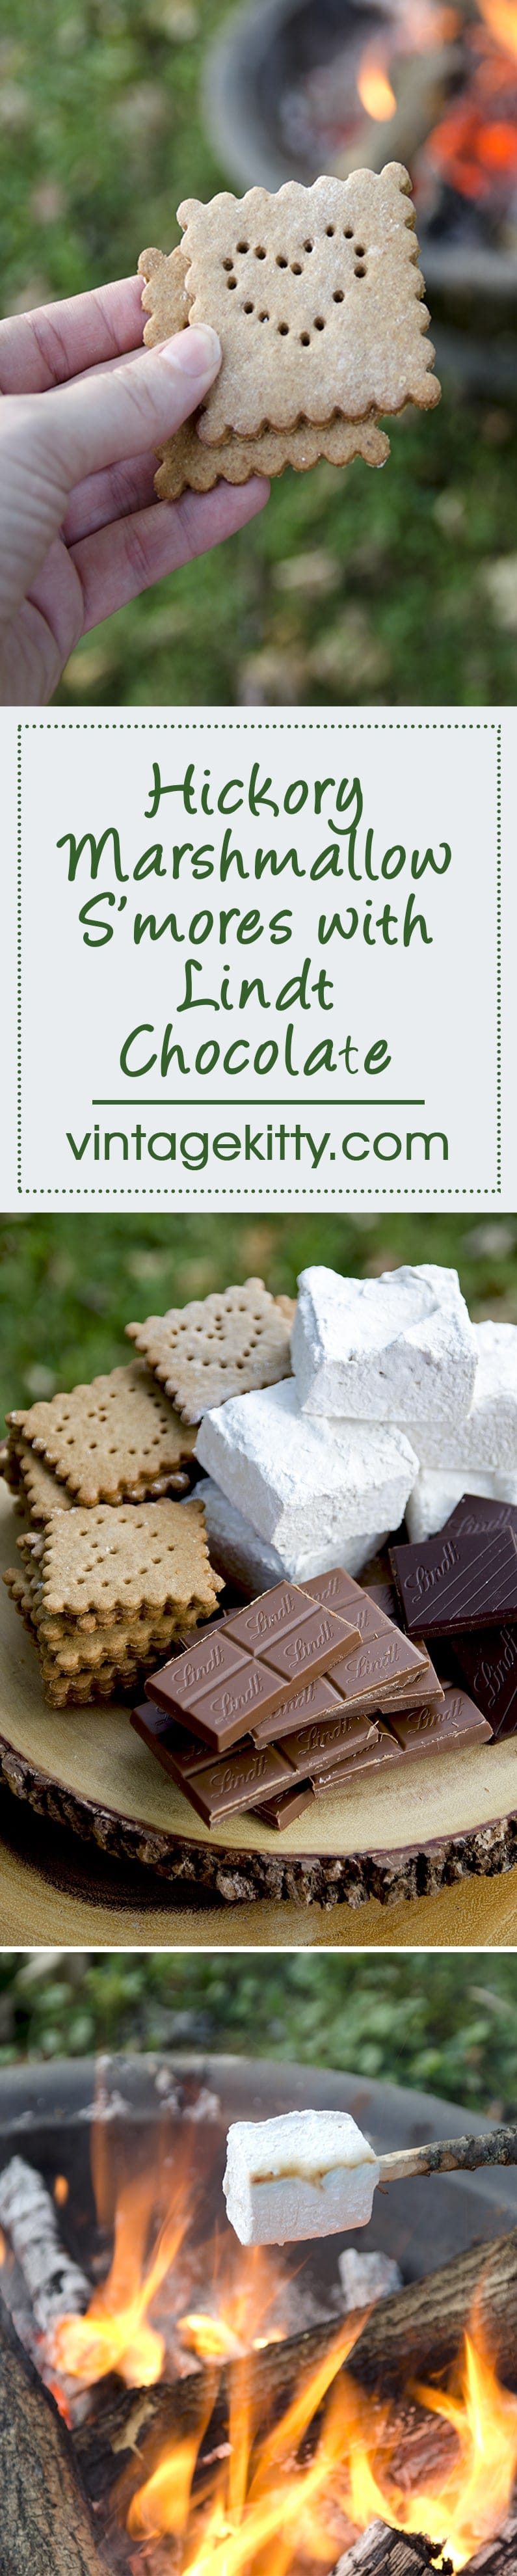 These foodie Hickory Marshmallow S'mores with Lindt Chocolate are an exquisite #Choctoberfest treat. Marshmallows & graham crackers made from scratch! LOVE! | vintagekitty.com